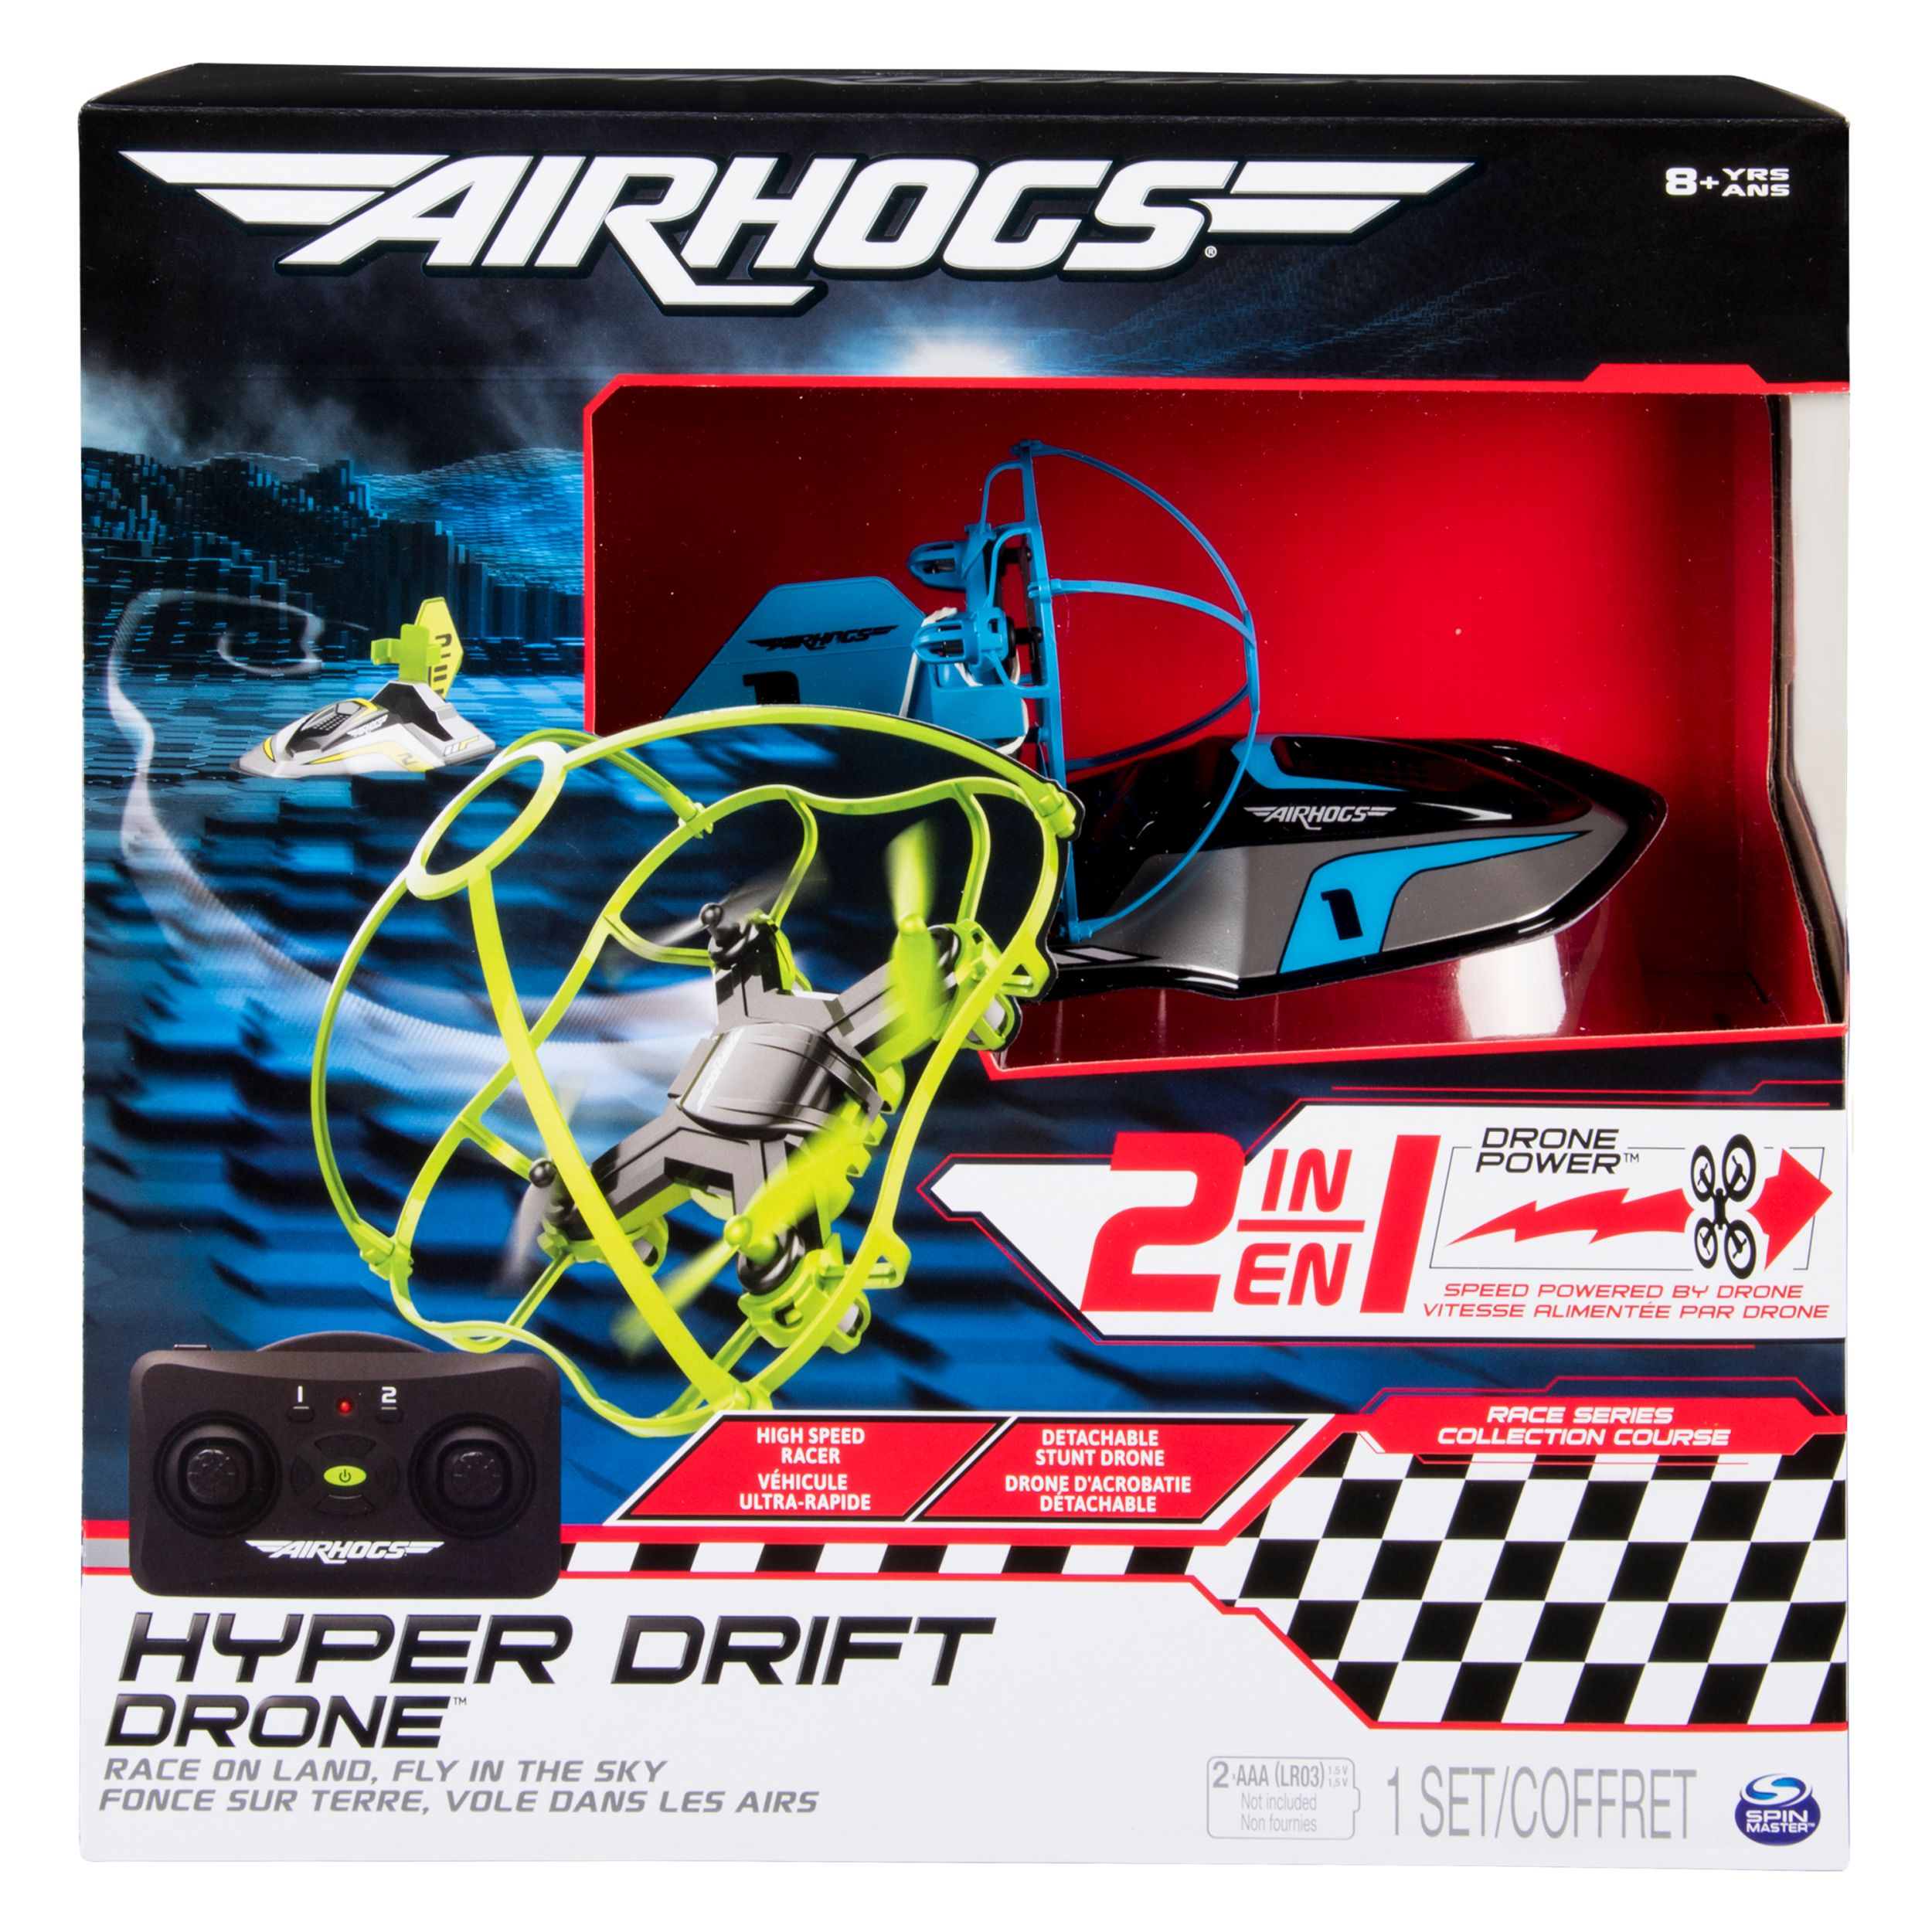 air hogs 2 in 1 hyper drift drone for high speed racing and flying rh walmart com